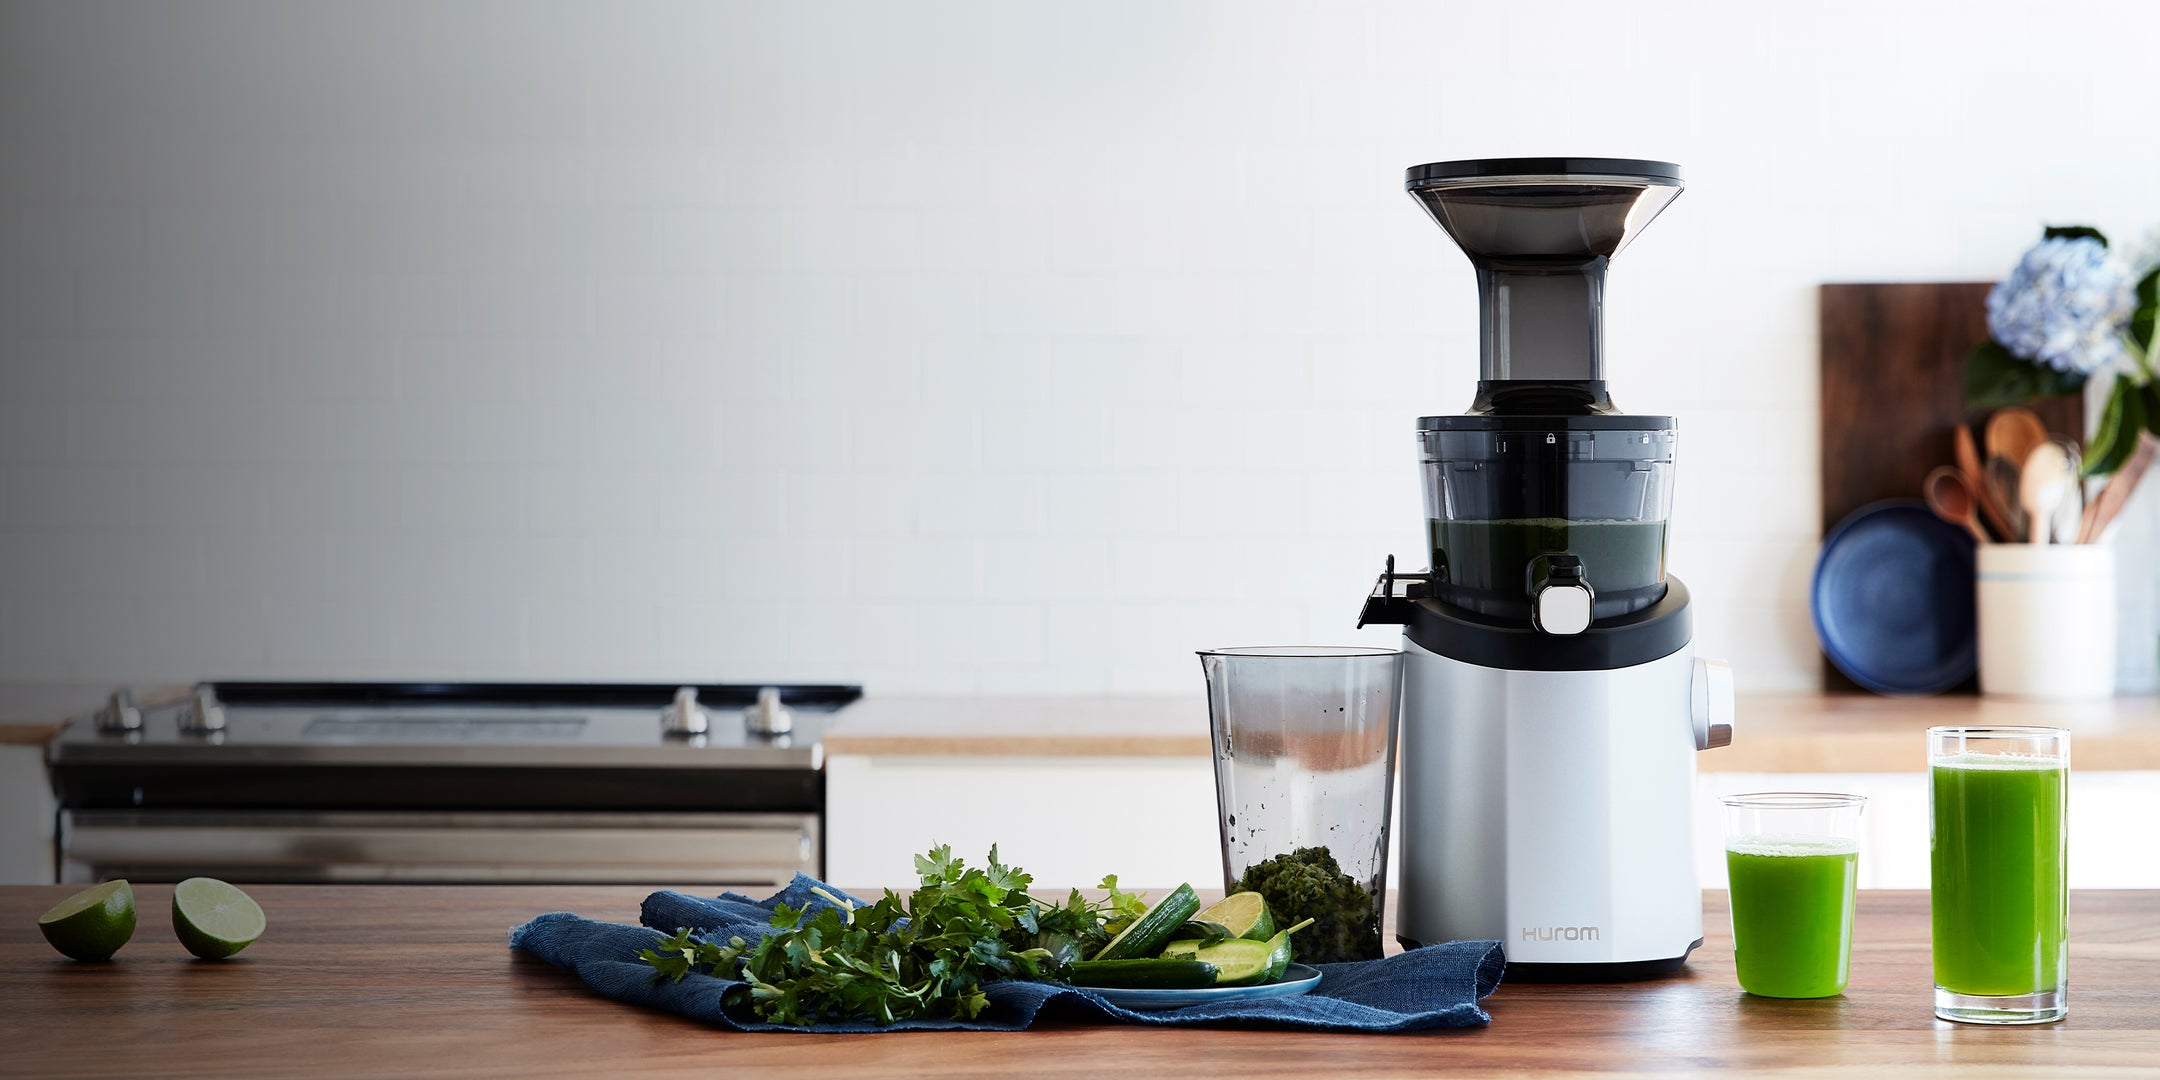 Hurom Official Store | Slow Juicers and Juicing Accessories